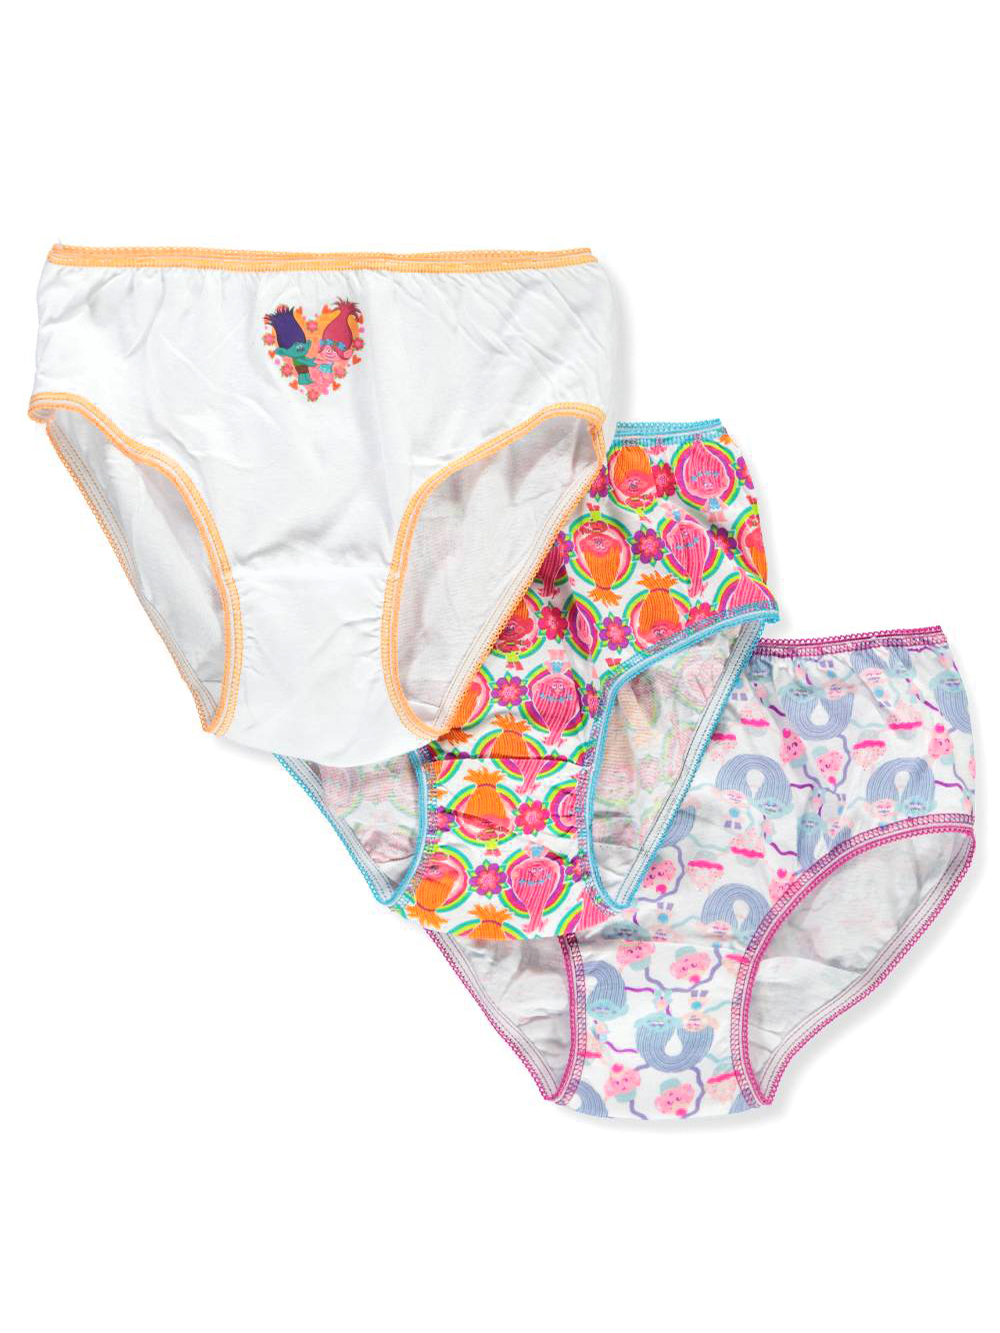 Girls' 3-Pack Briefs